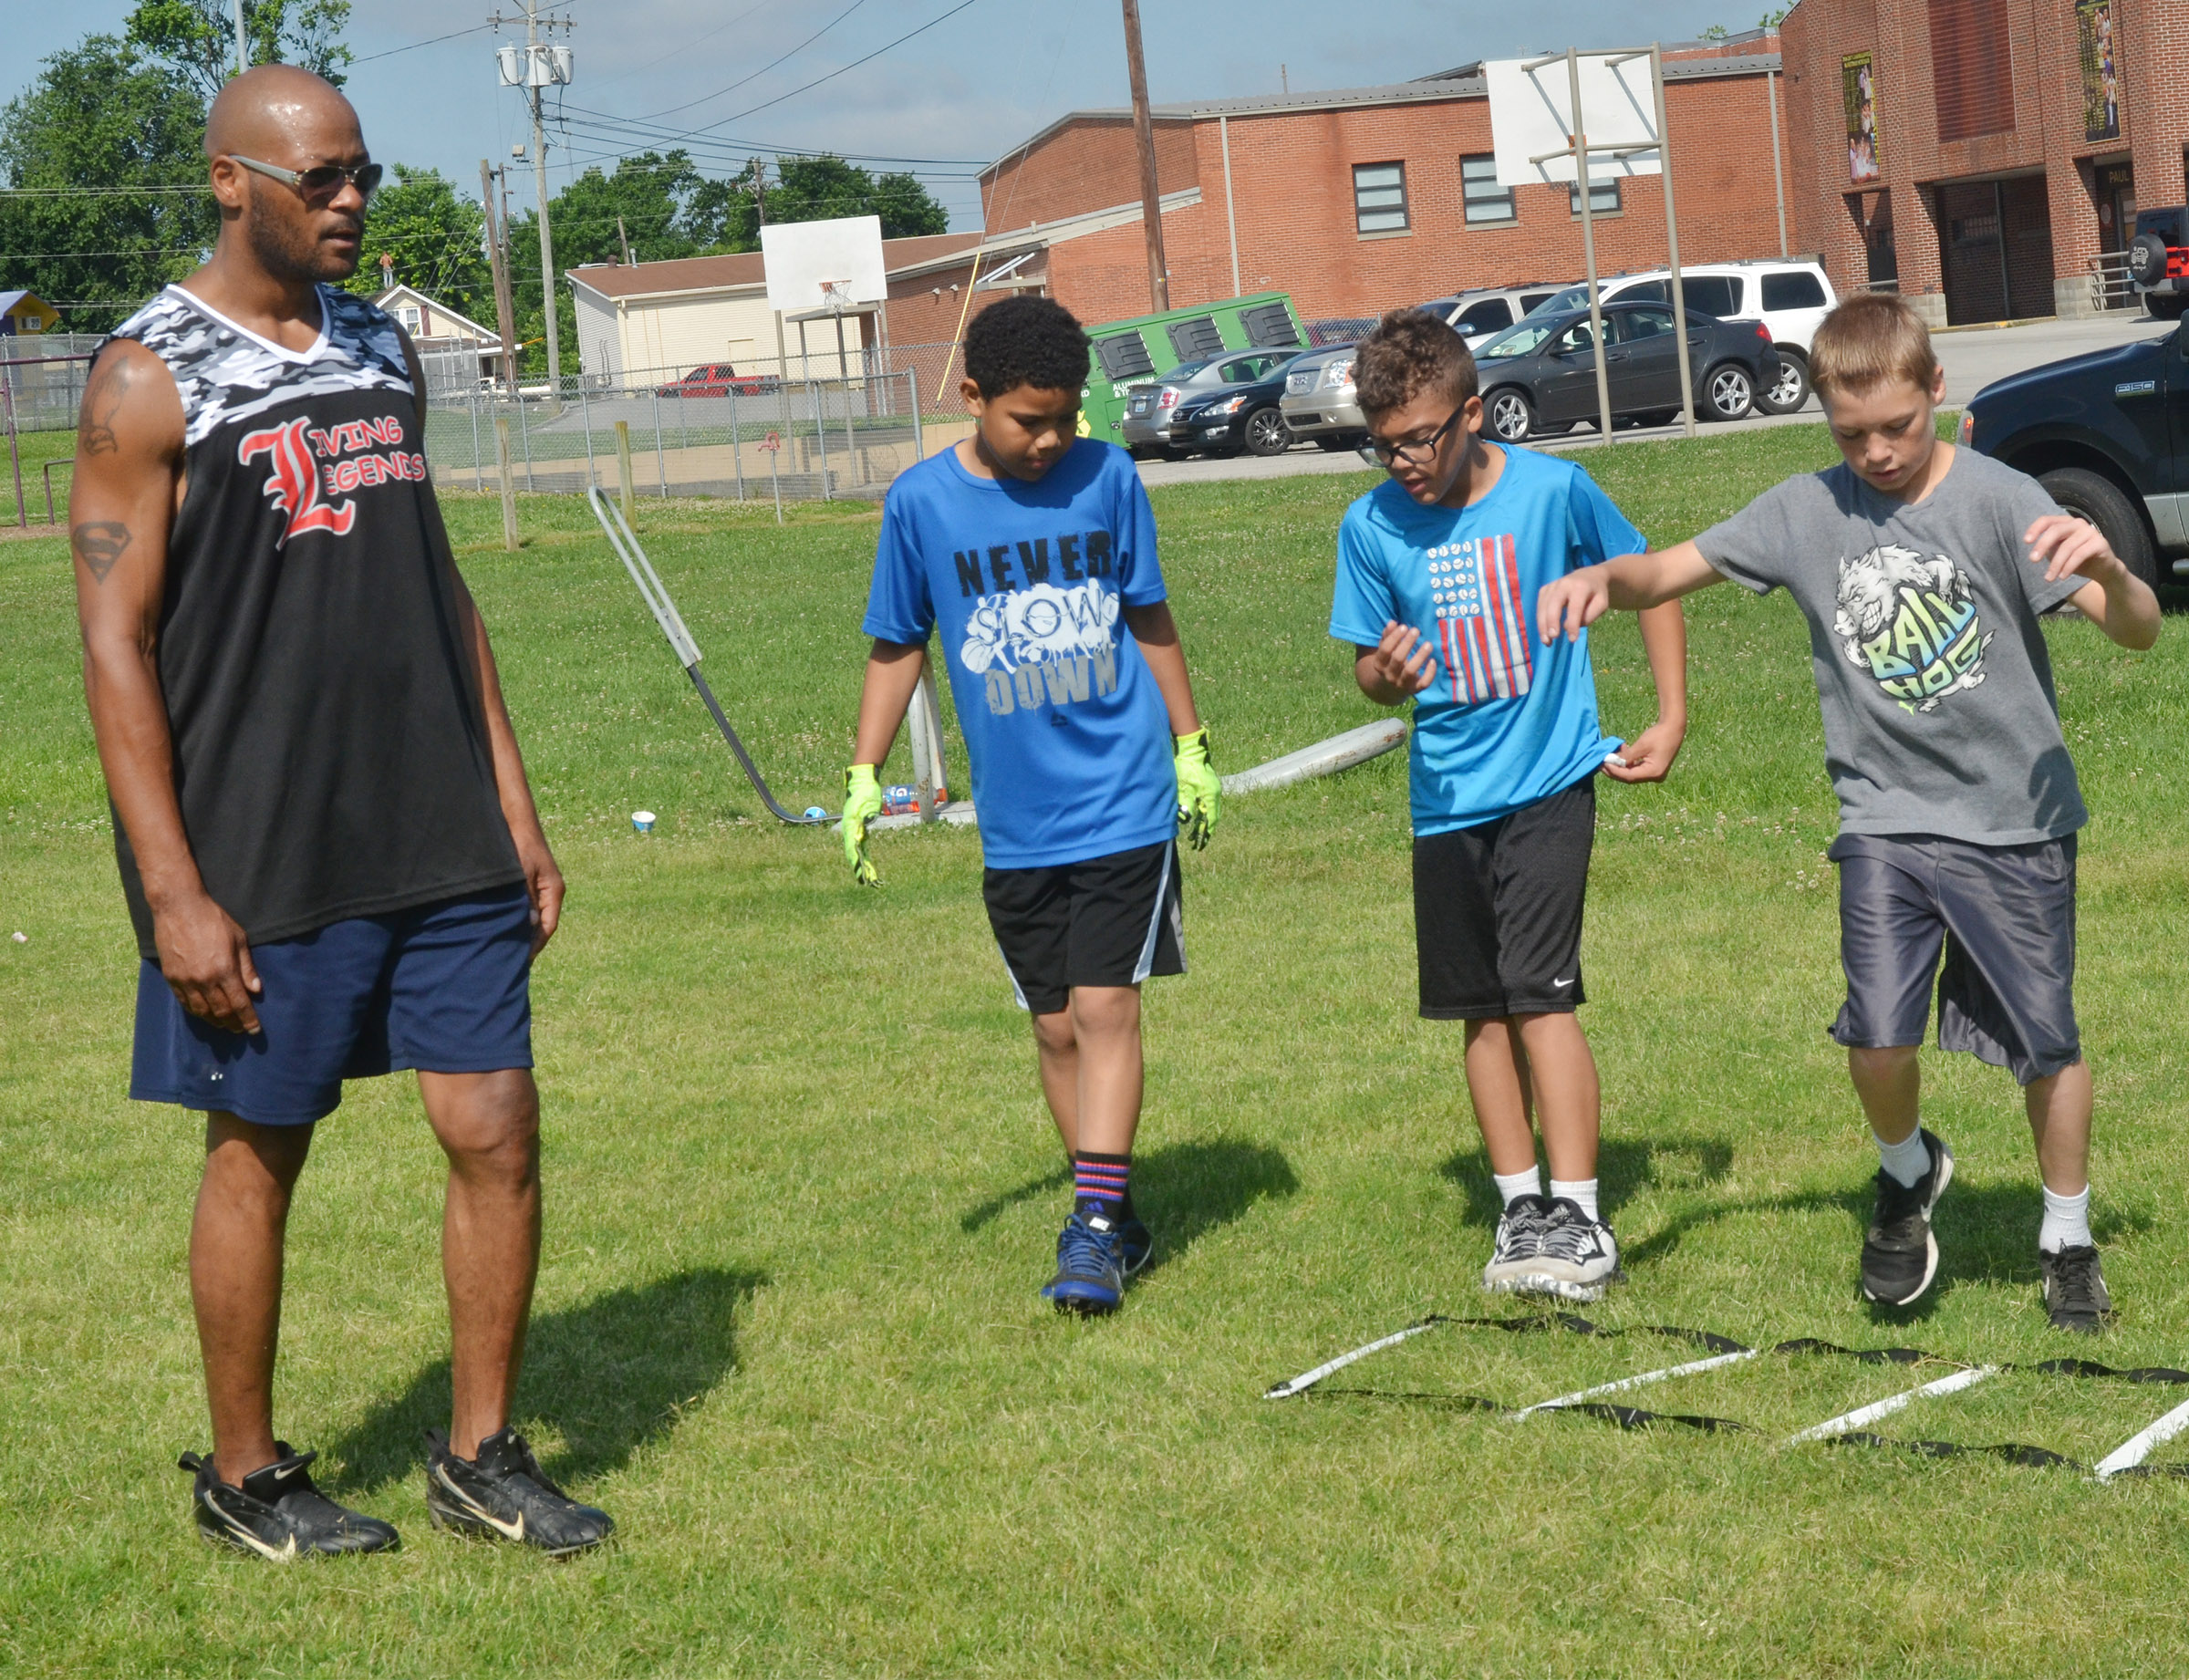 Former NFL player Tony Driver helps, from left, Tashaun Hart, Logan Phillips and Tuff Harper with their footwork.